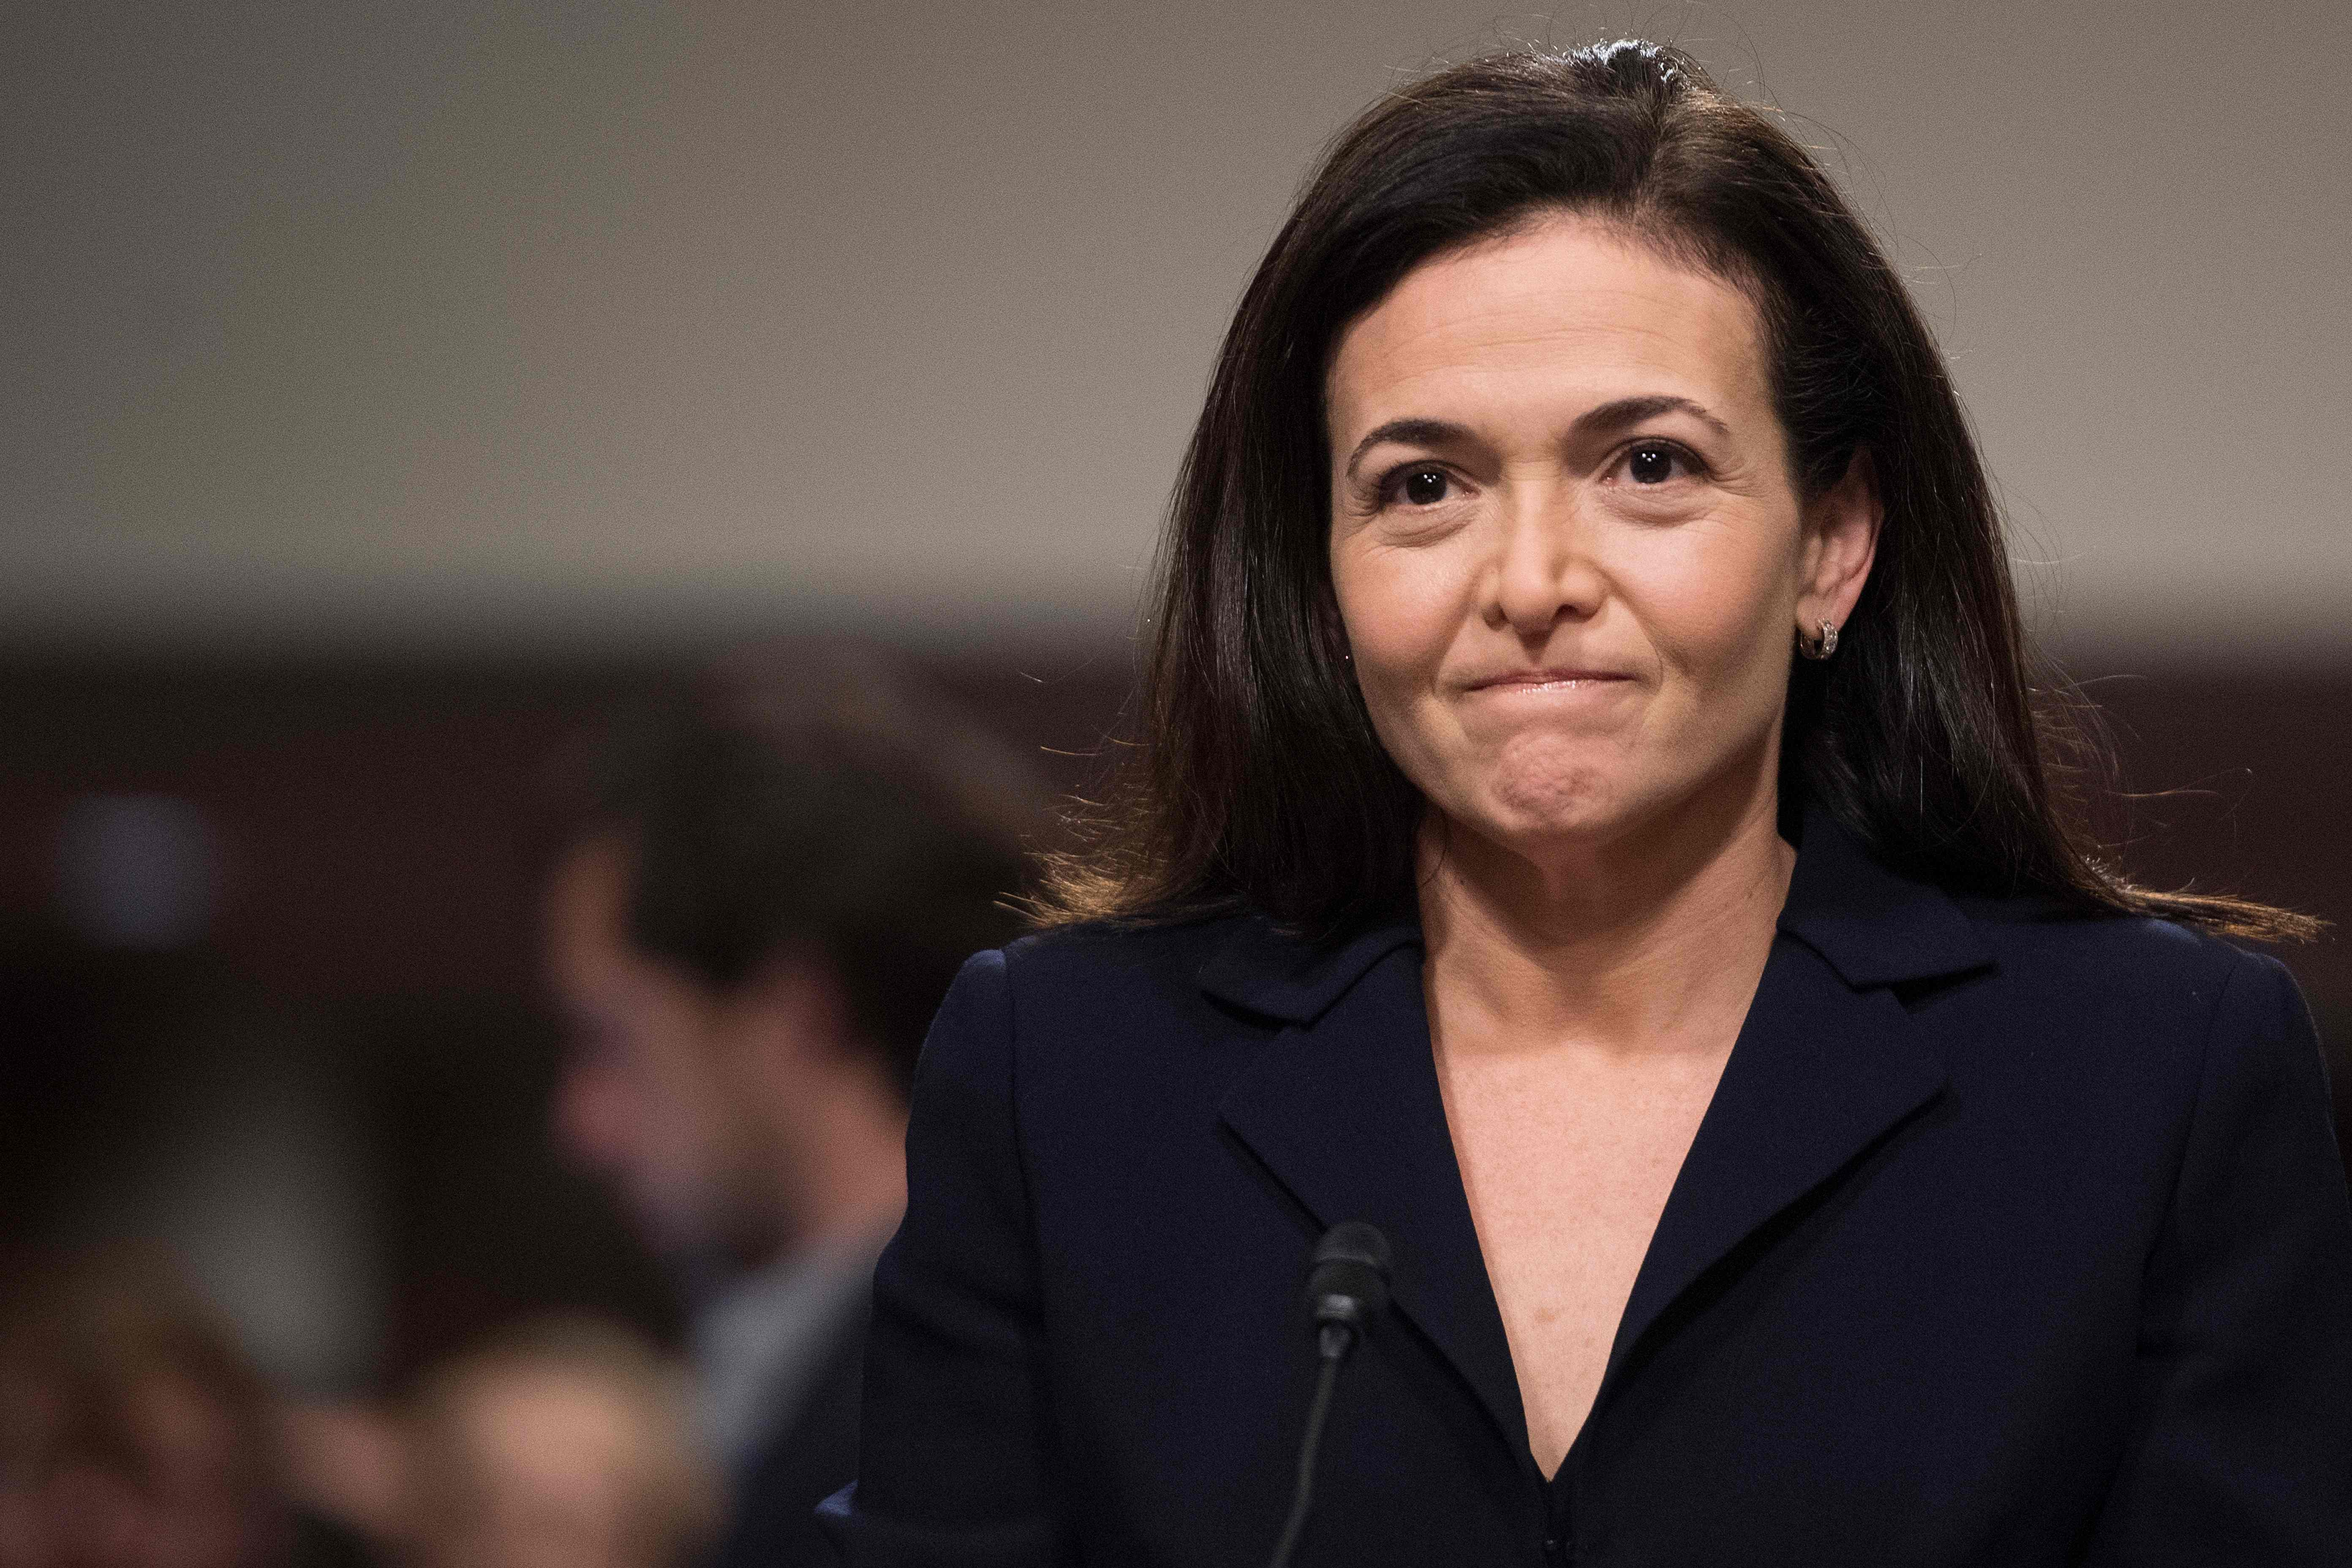 The end of leaning in: How Sheryl Sandberg's message of empowerment